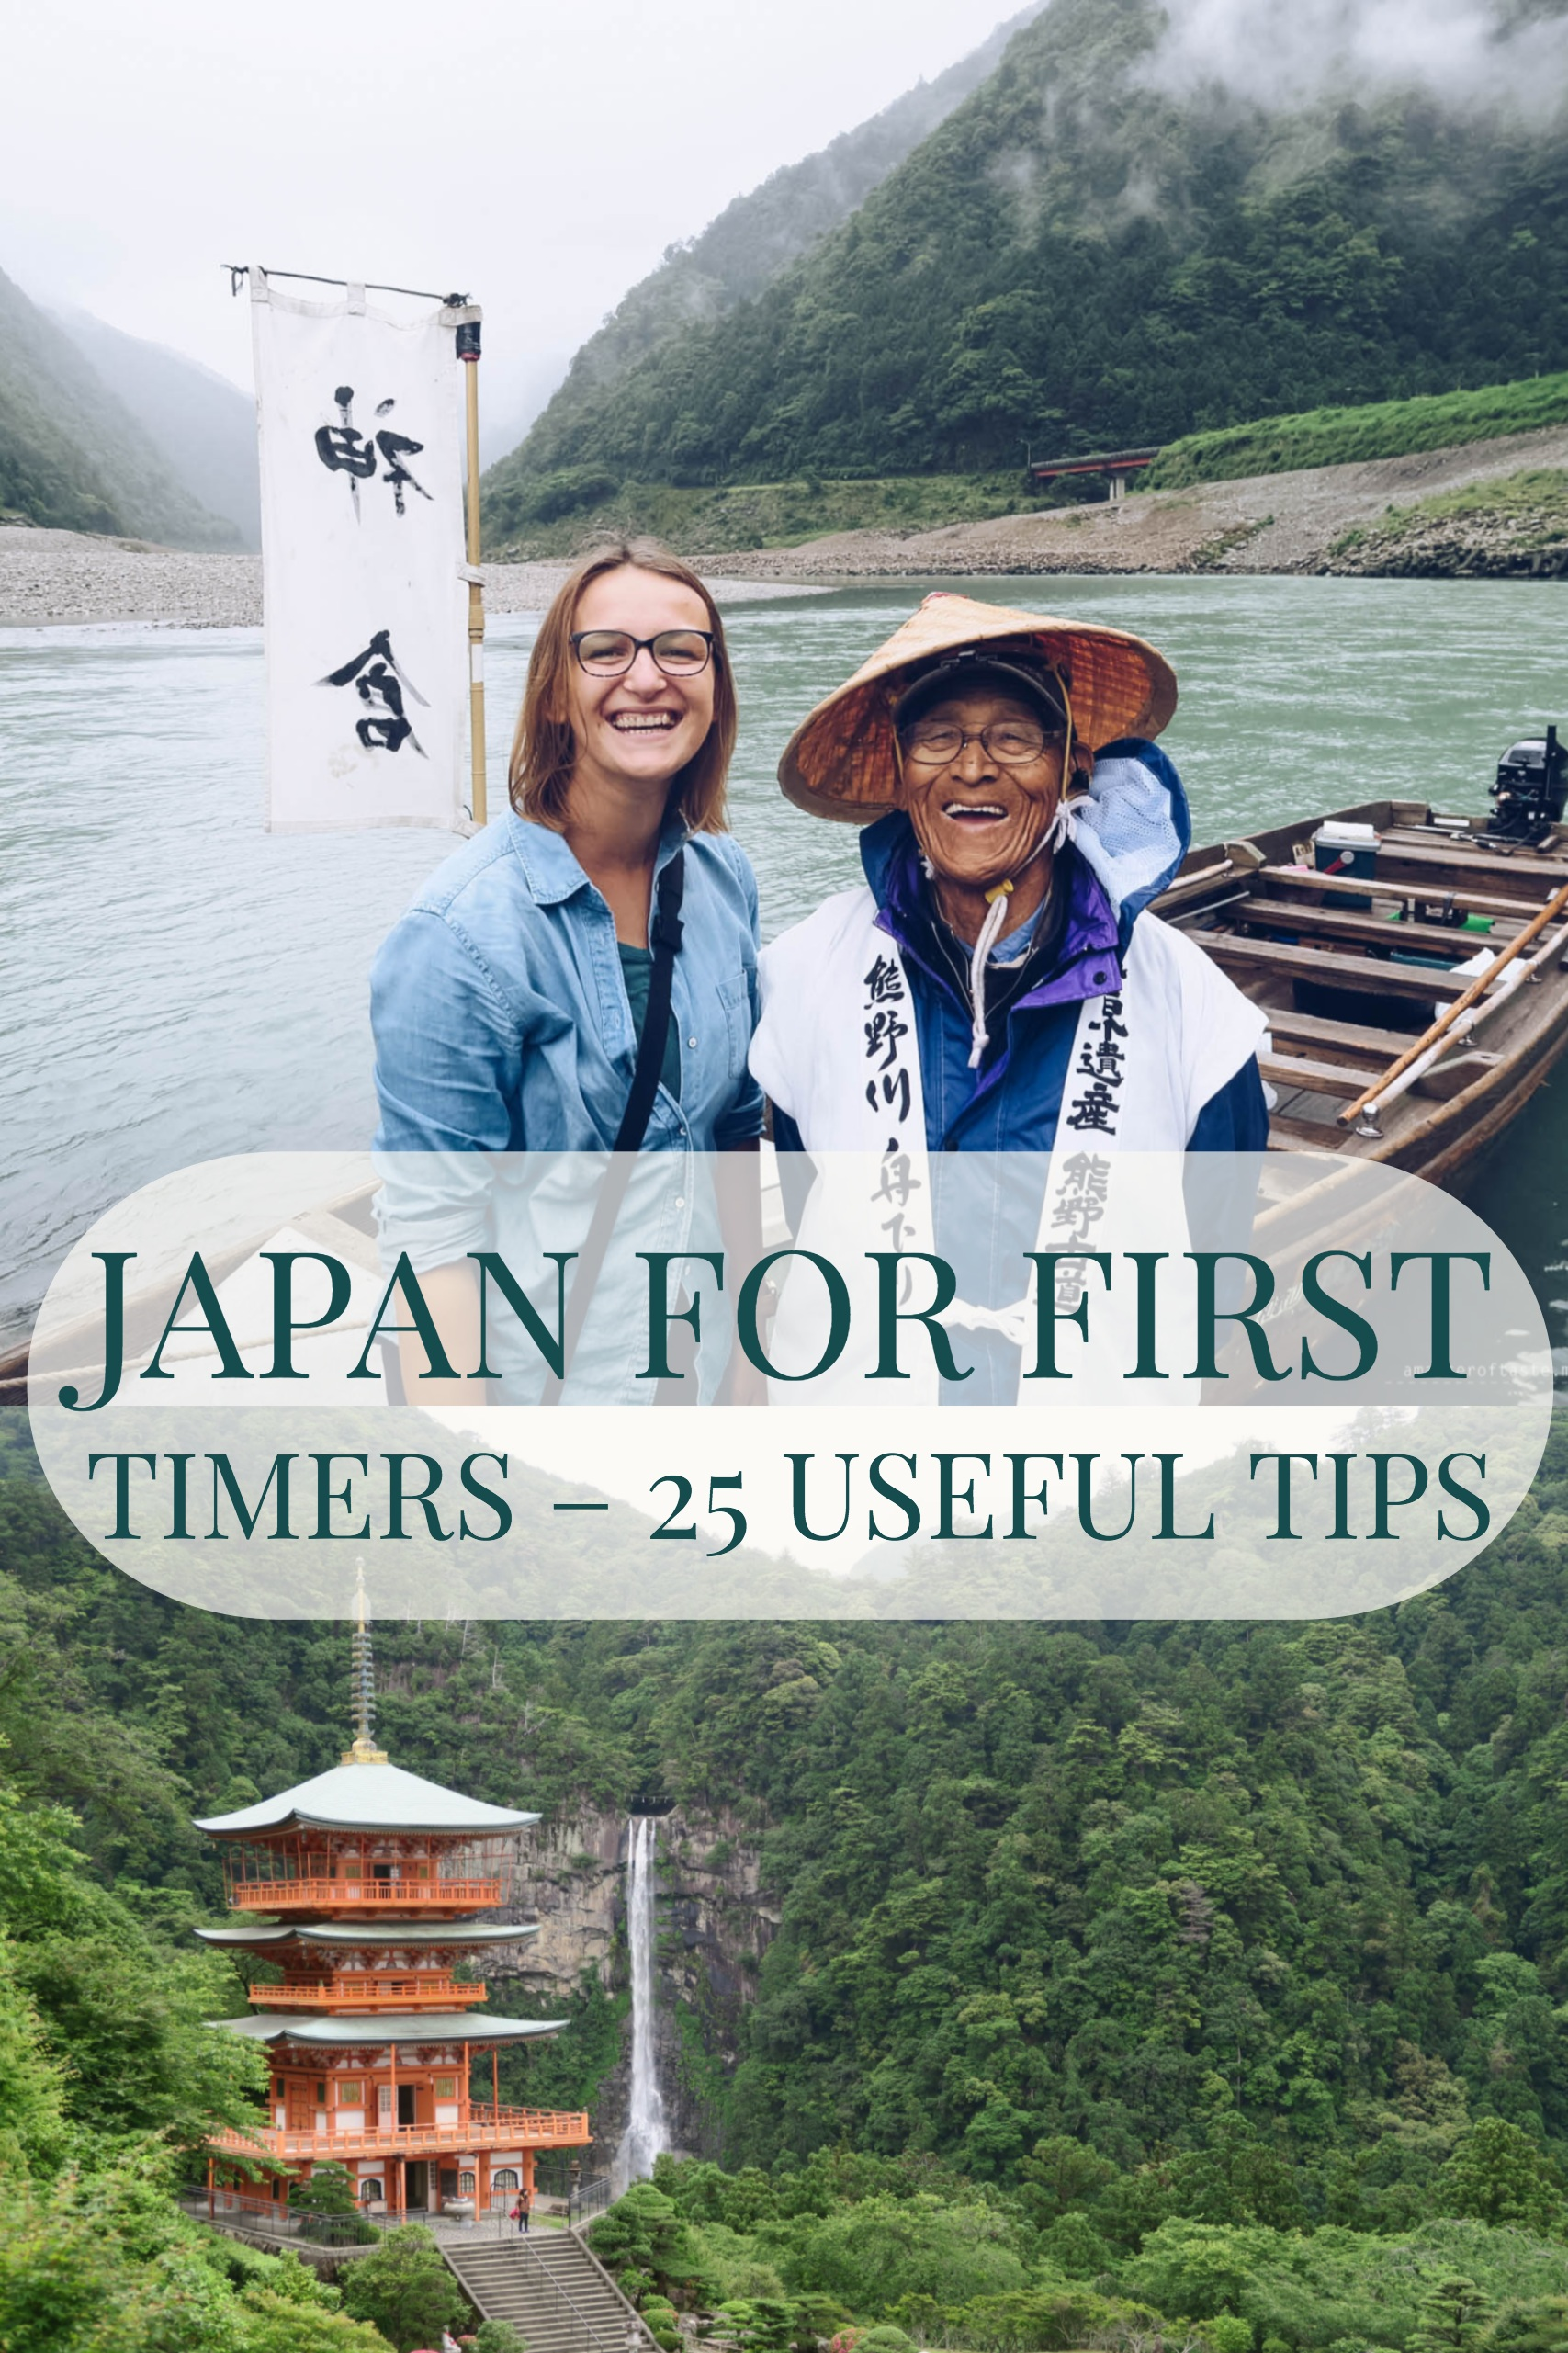 Japan-for-firsttimers